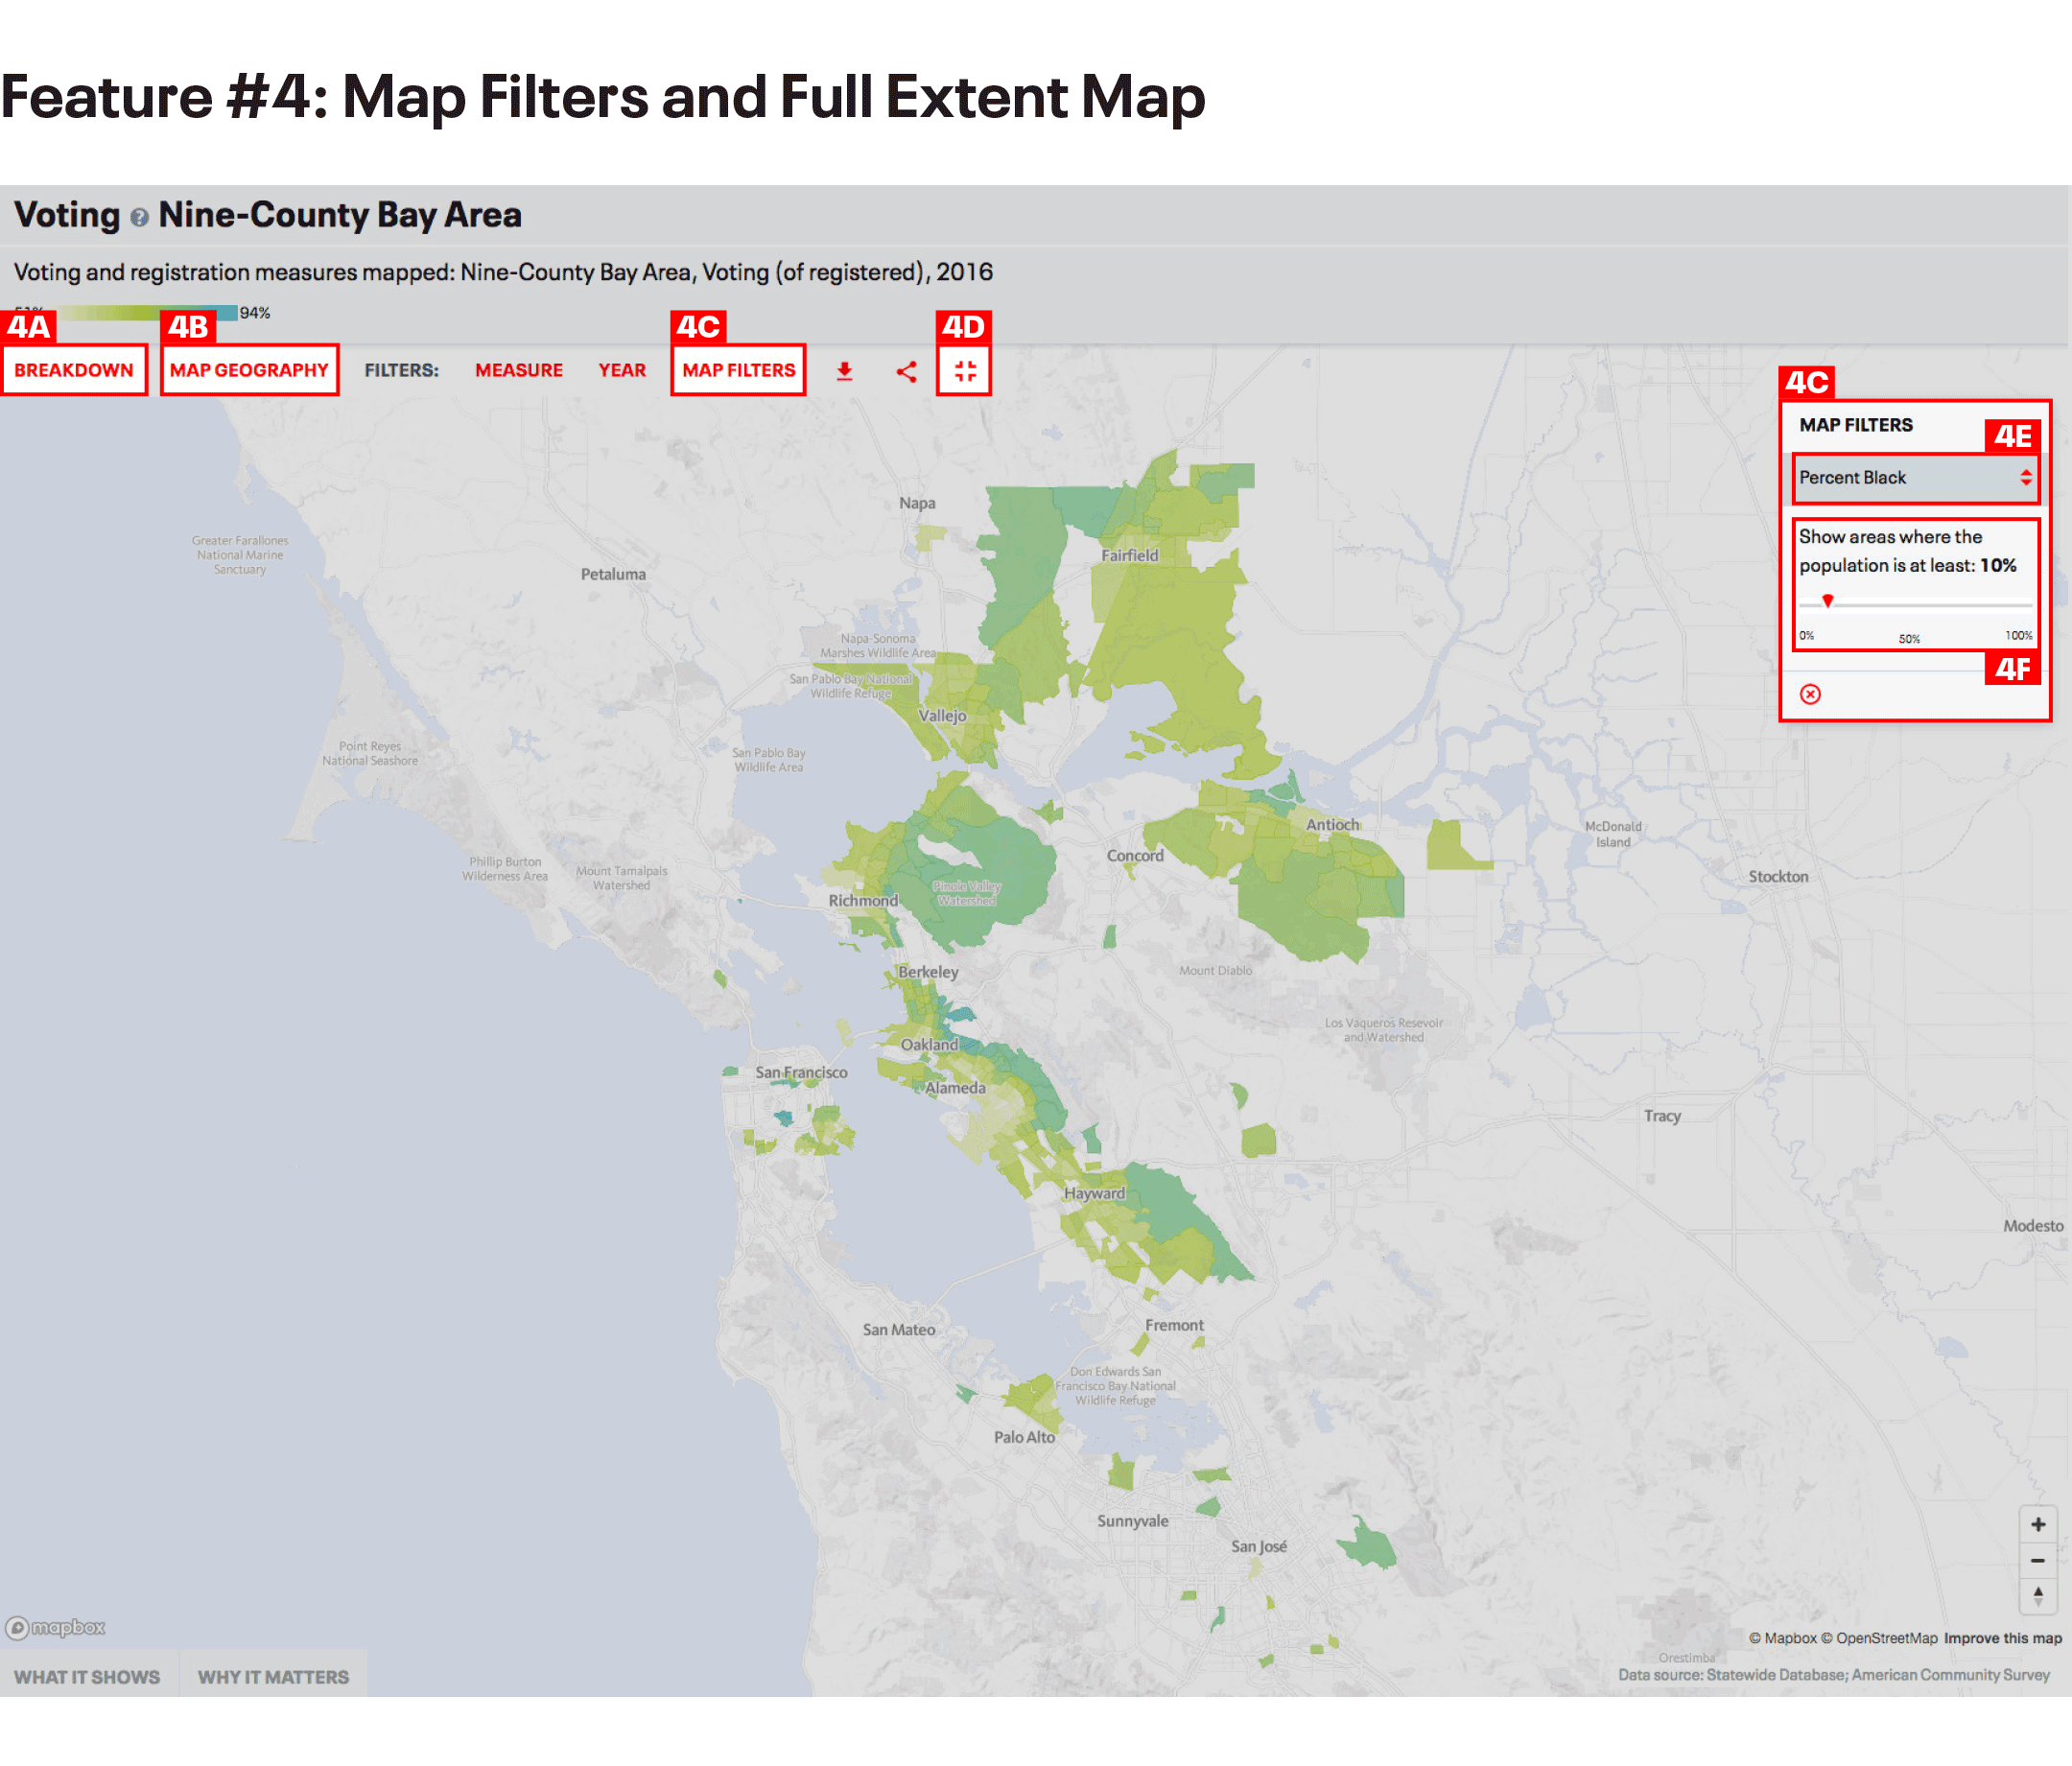 Voting Map Filters